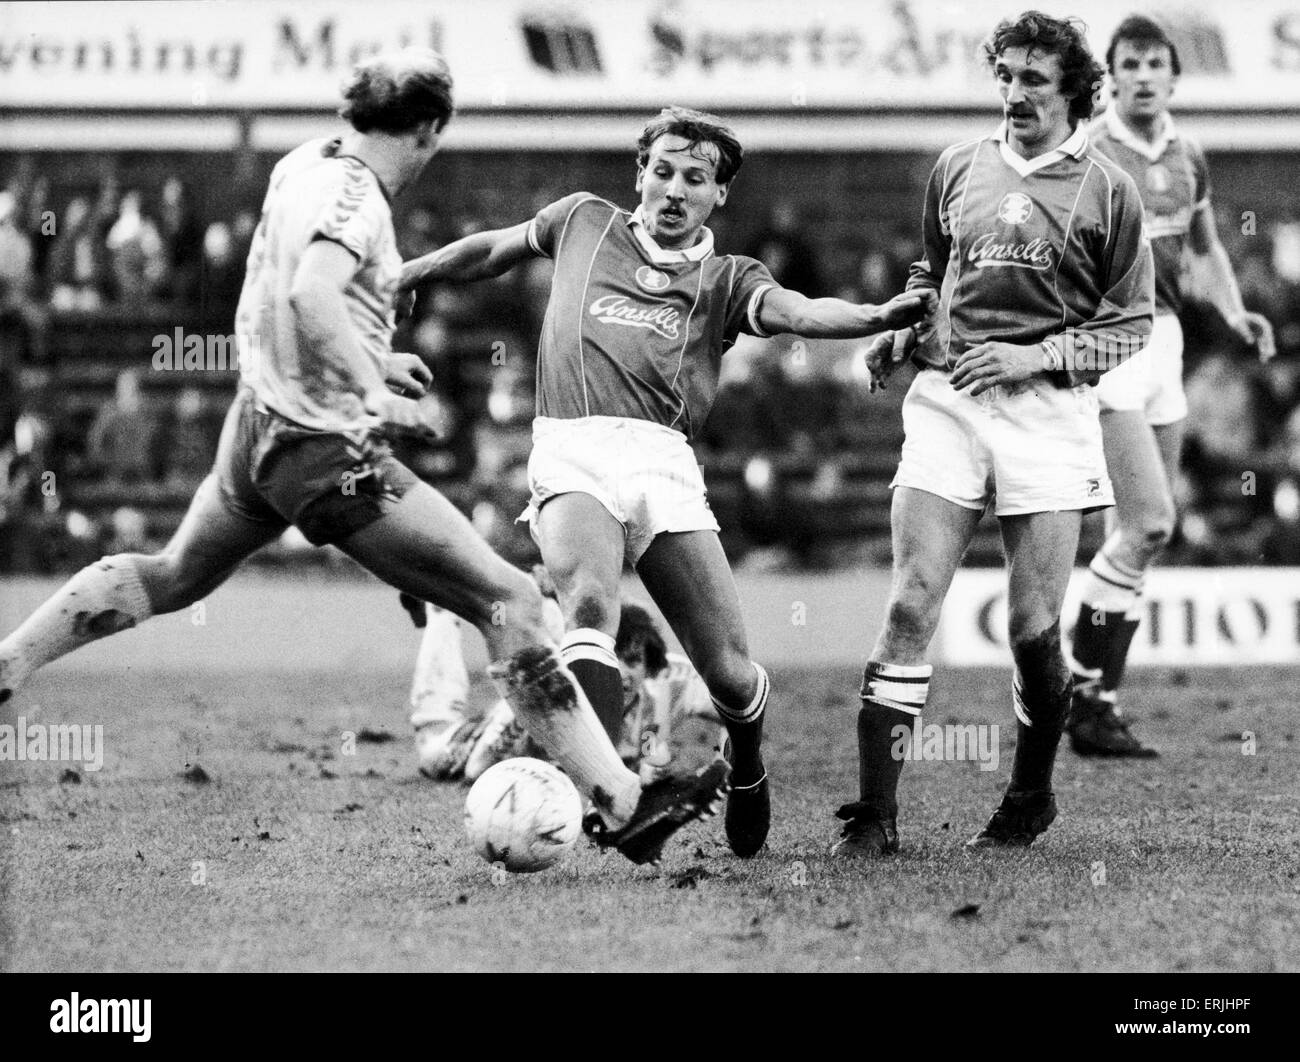 Birmingham City footballer Robert Hopkins in action challenged by Nowrich City players Greg Downs as Des Bremner Stock Photo